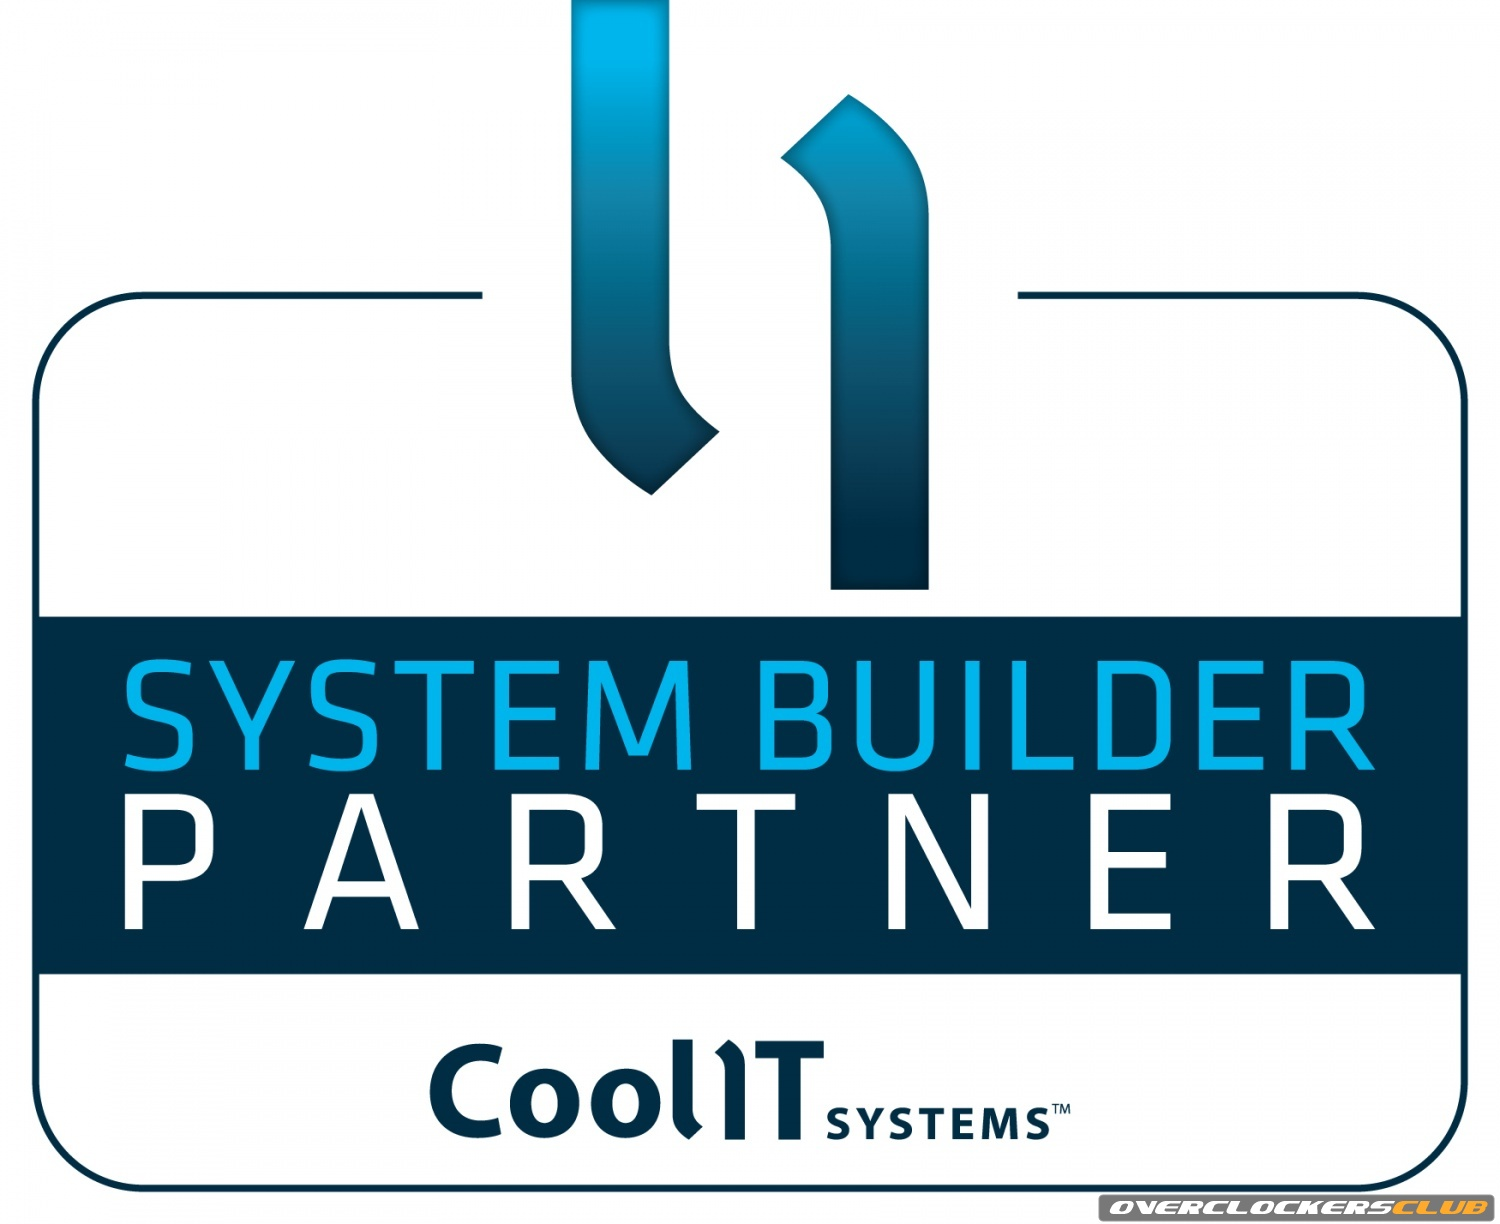 New System Builder Partner Program Announced By CoolIT Systems